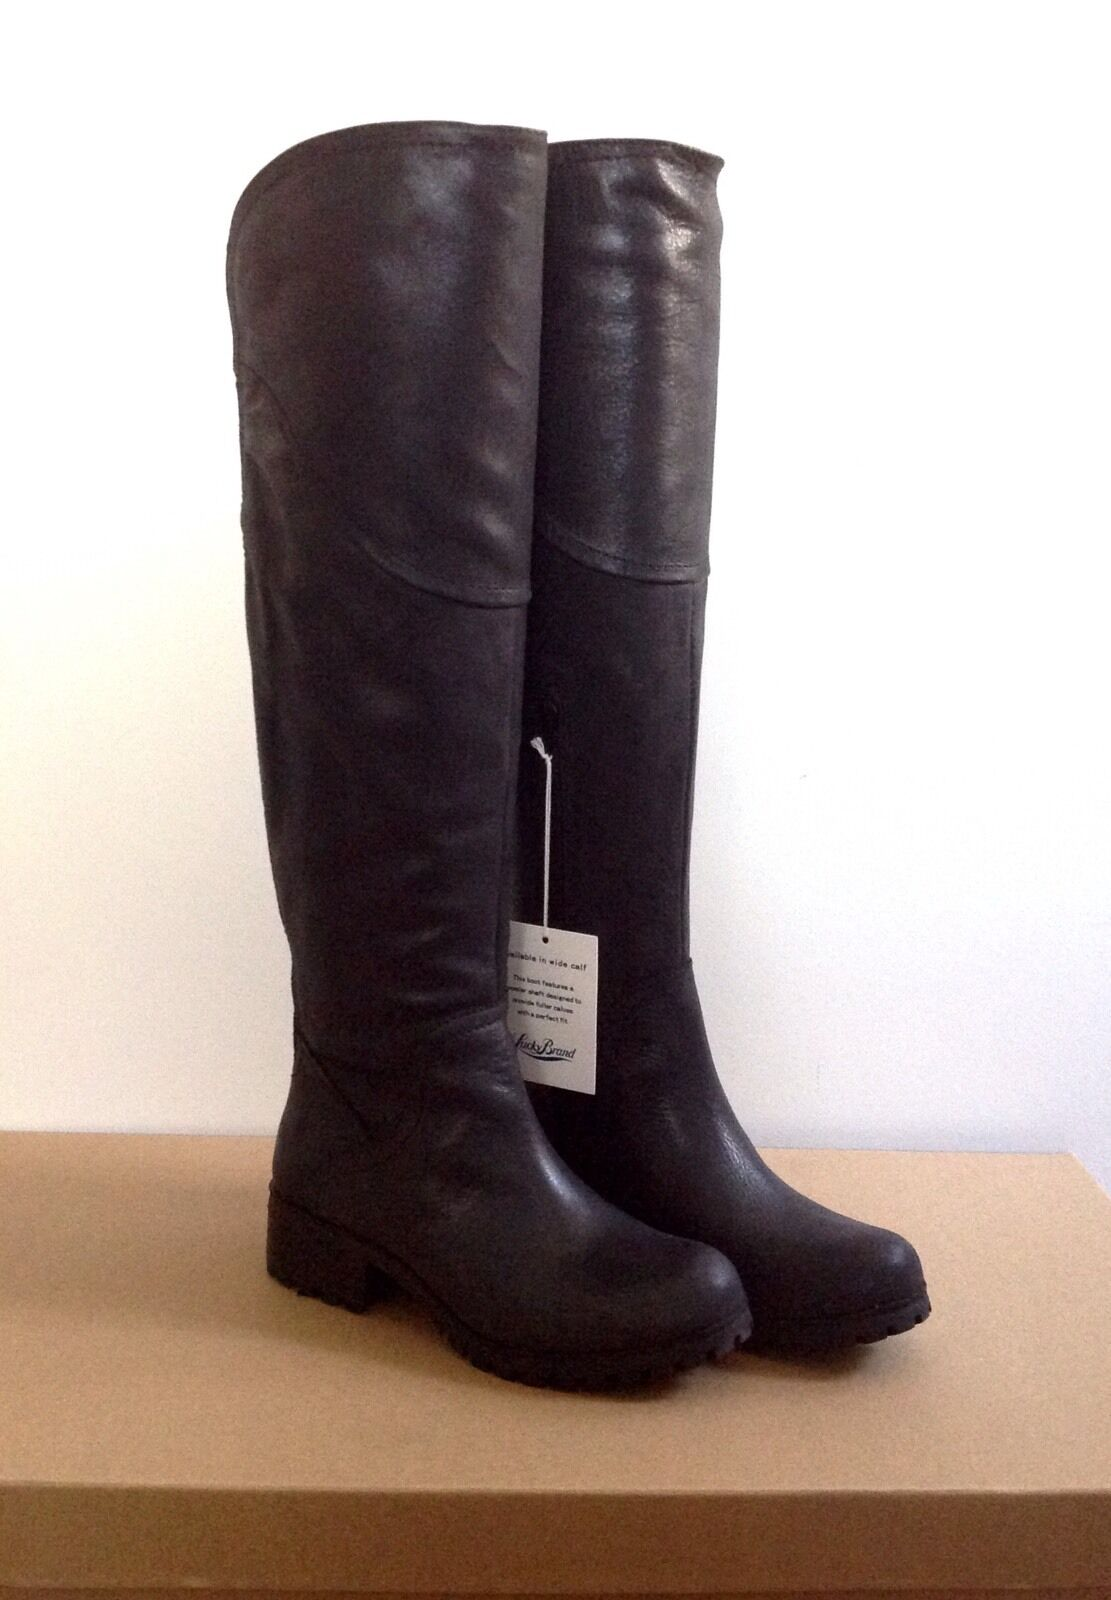 NEW  Lucky Brand  Over-the Knee Boots, Black Leather, 6.5M